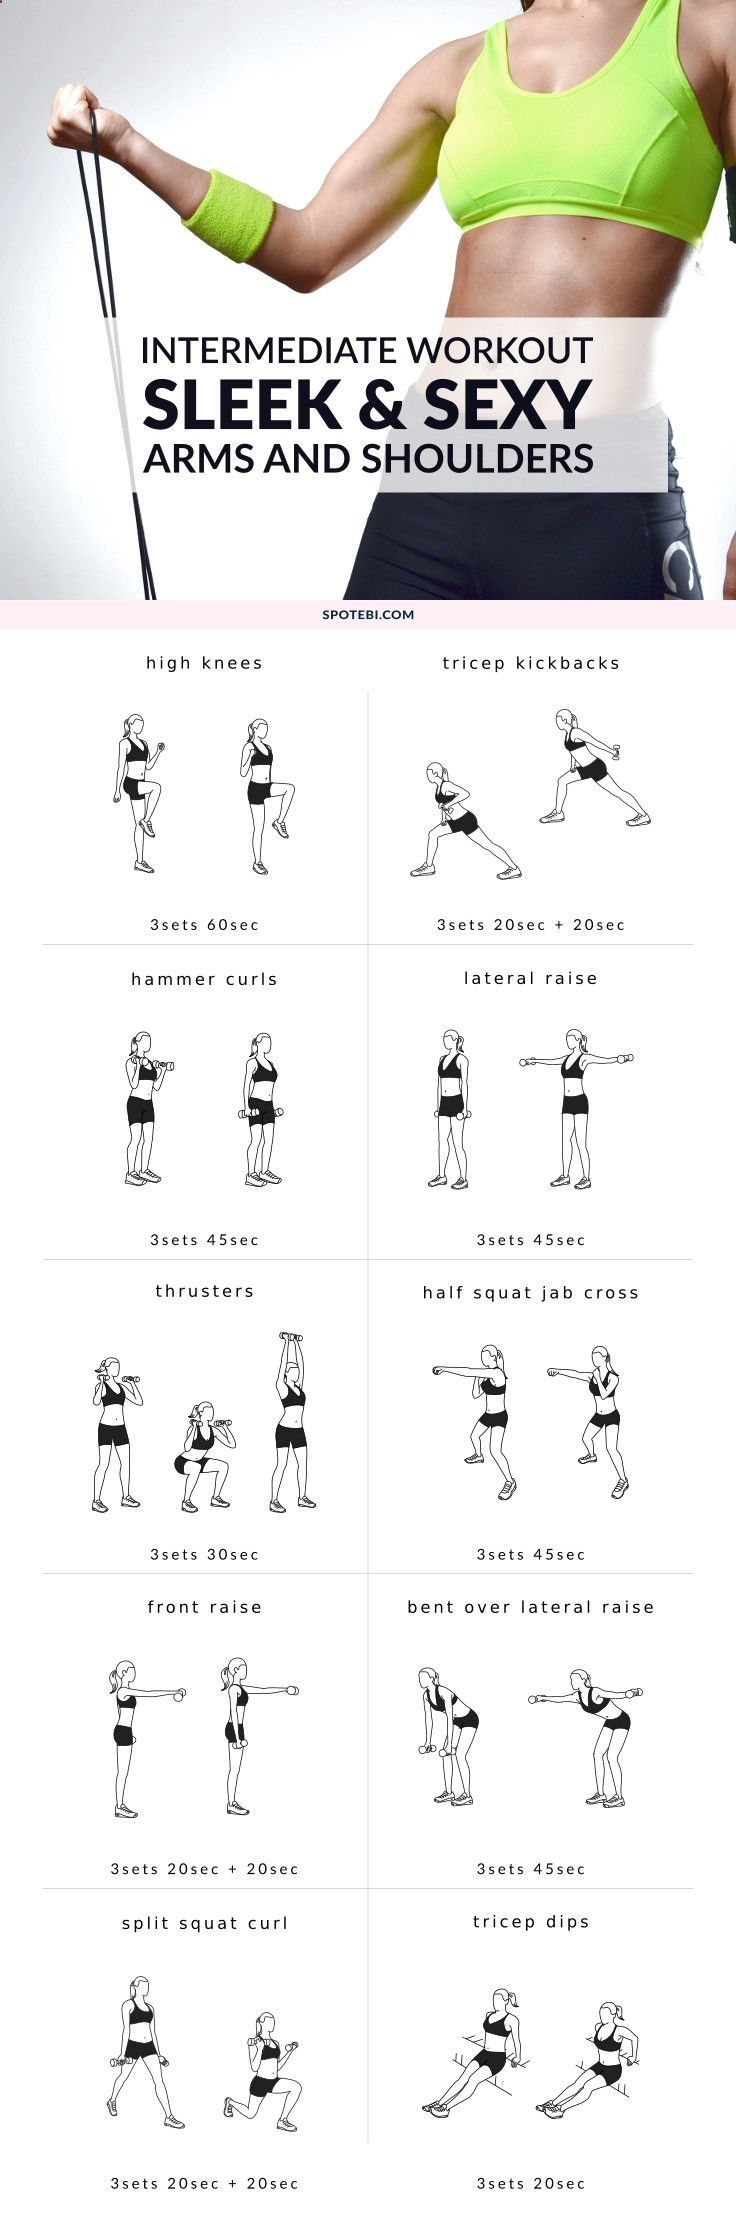 Get sleek arms and sexy shoulders with this dumbbell workout routine for women. A set of 10 upper body exercises perfect for strengthening the muscles and start sculpting your torso. <a href=http://www.spotebi.comworkout-routines/upper-body-dumbbell-workout-routine/ rel=nofollow target=_blank>www.spotebi.com...</a> http://www.spotebi.comworkout-routines/upper-body-dumbbell-workout-routine/?utm_conten…